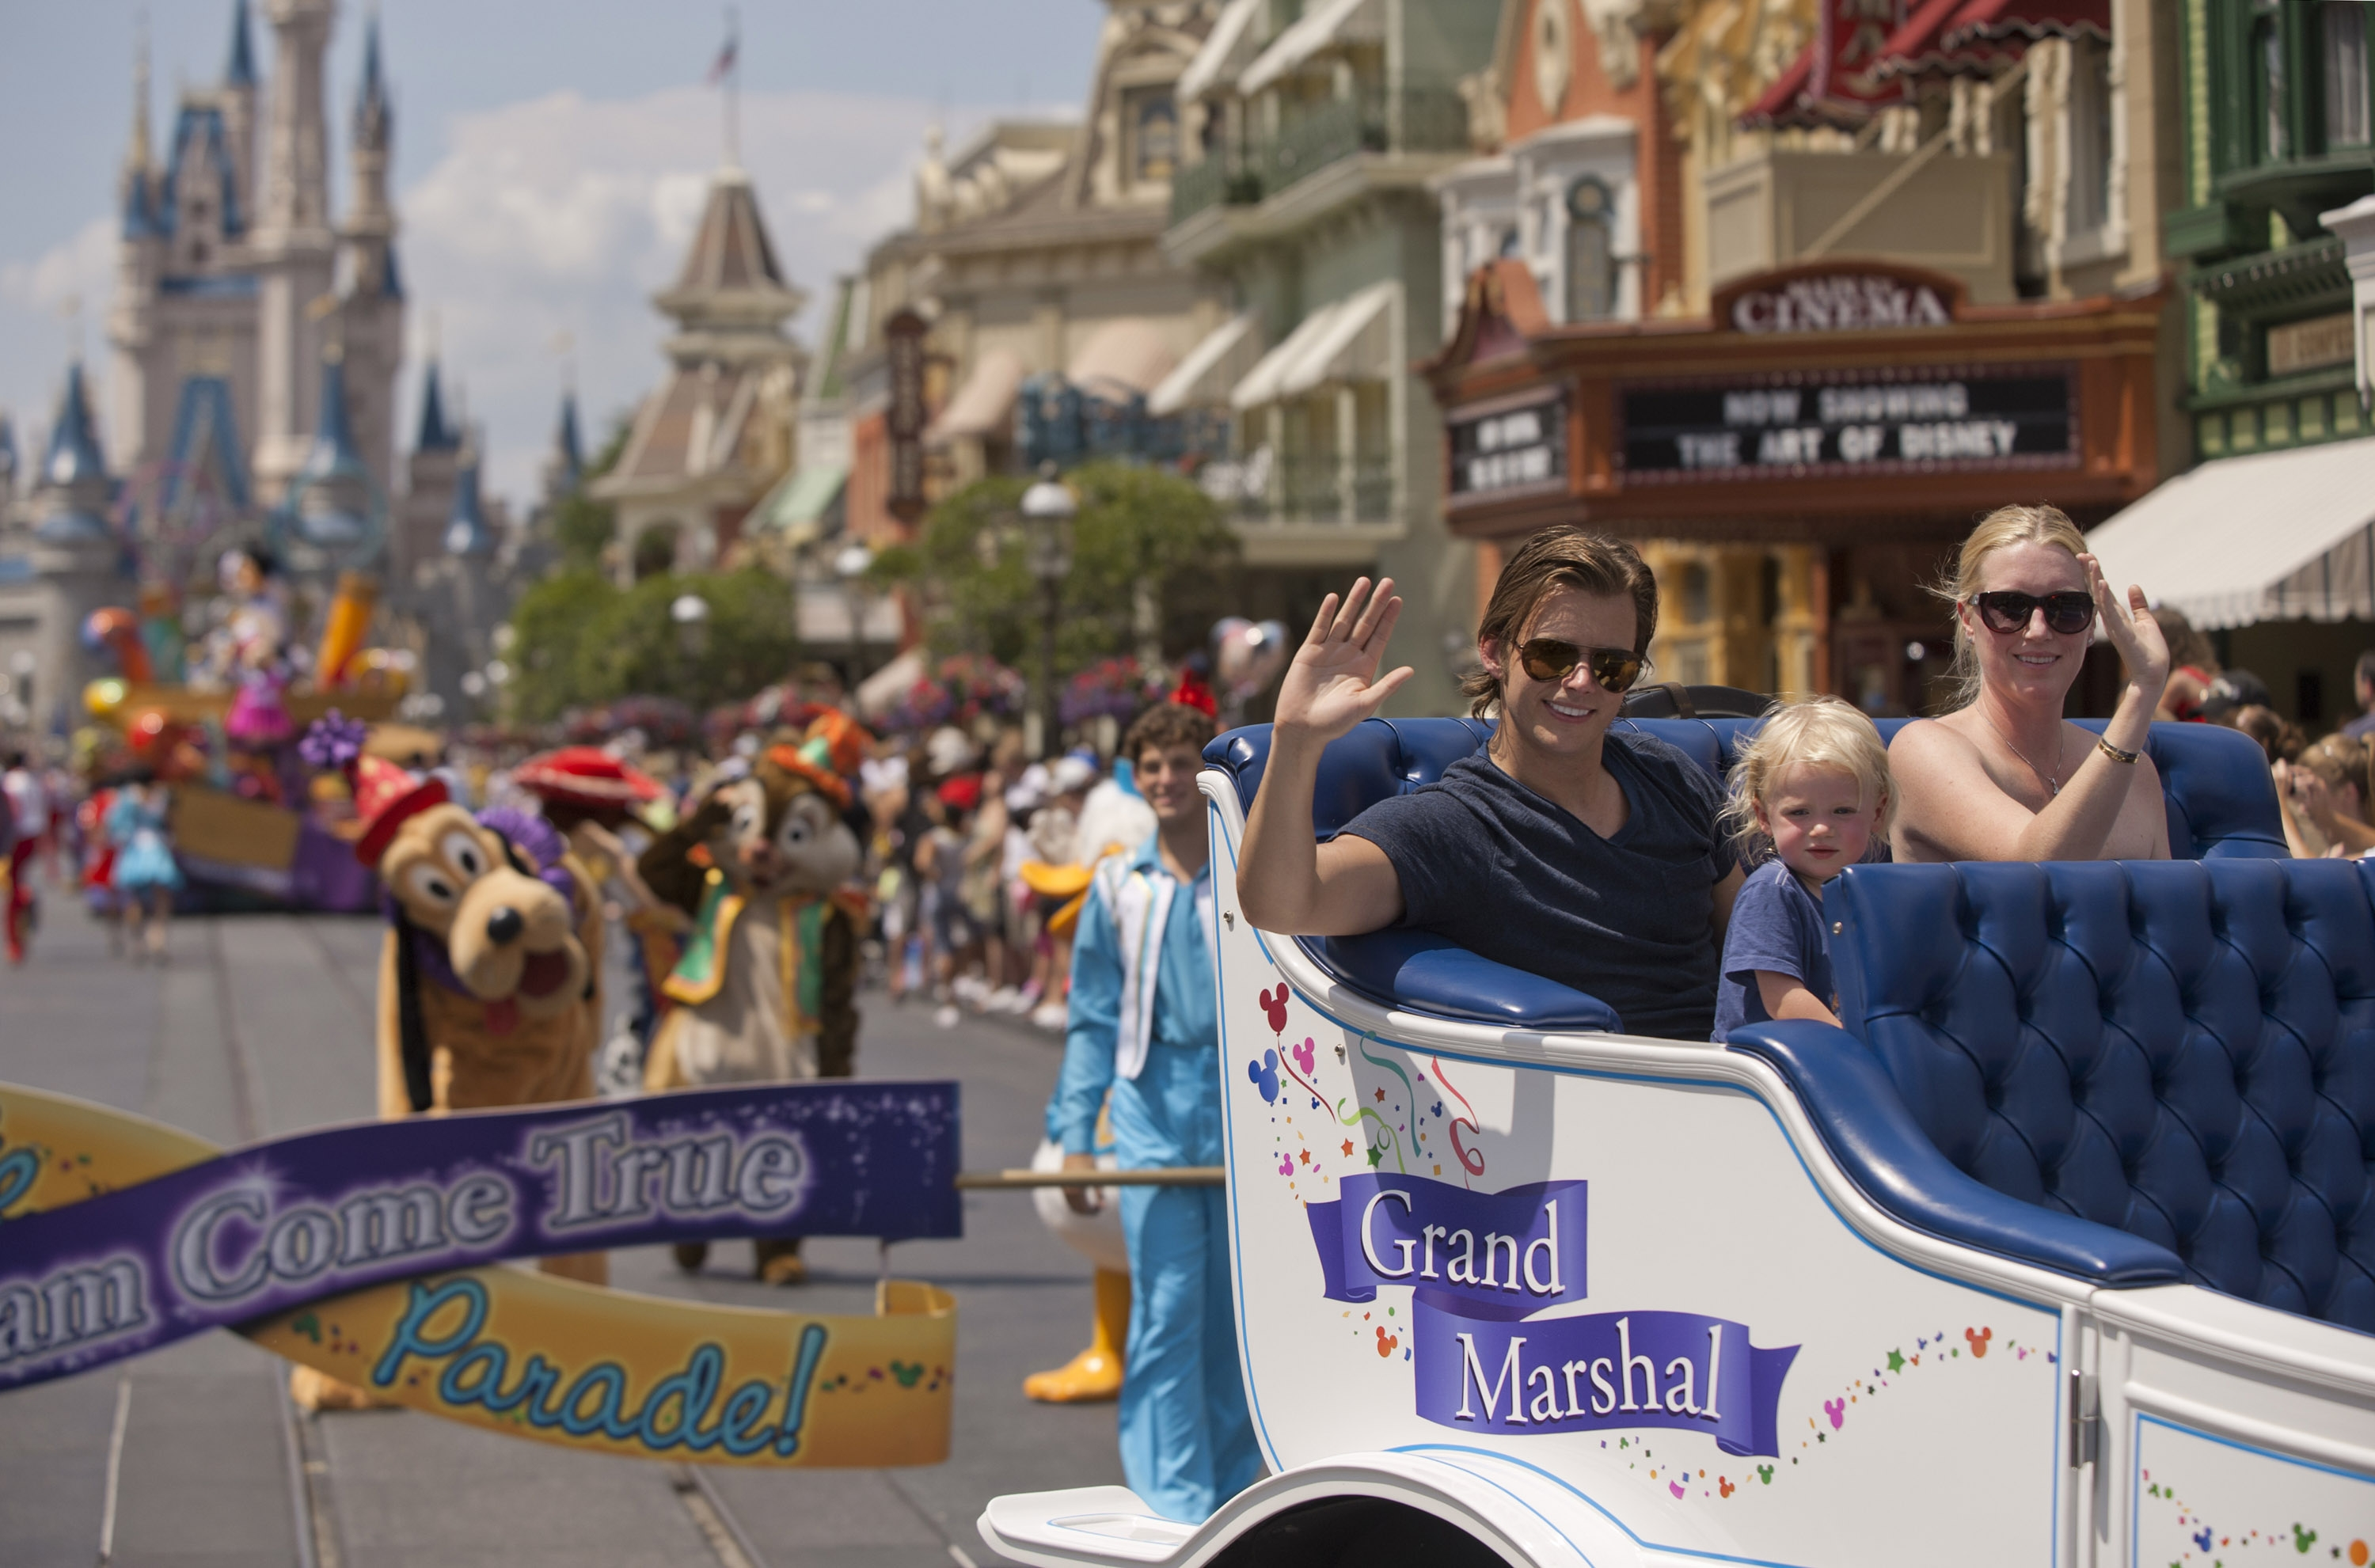 Indianapolis 500 Champion Dan Wheldon at the Magic Kingdom